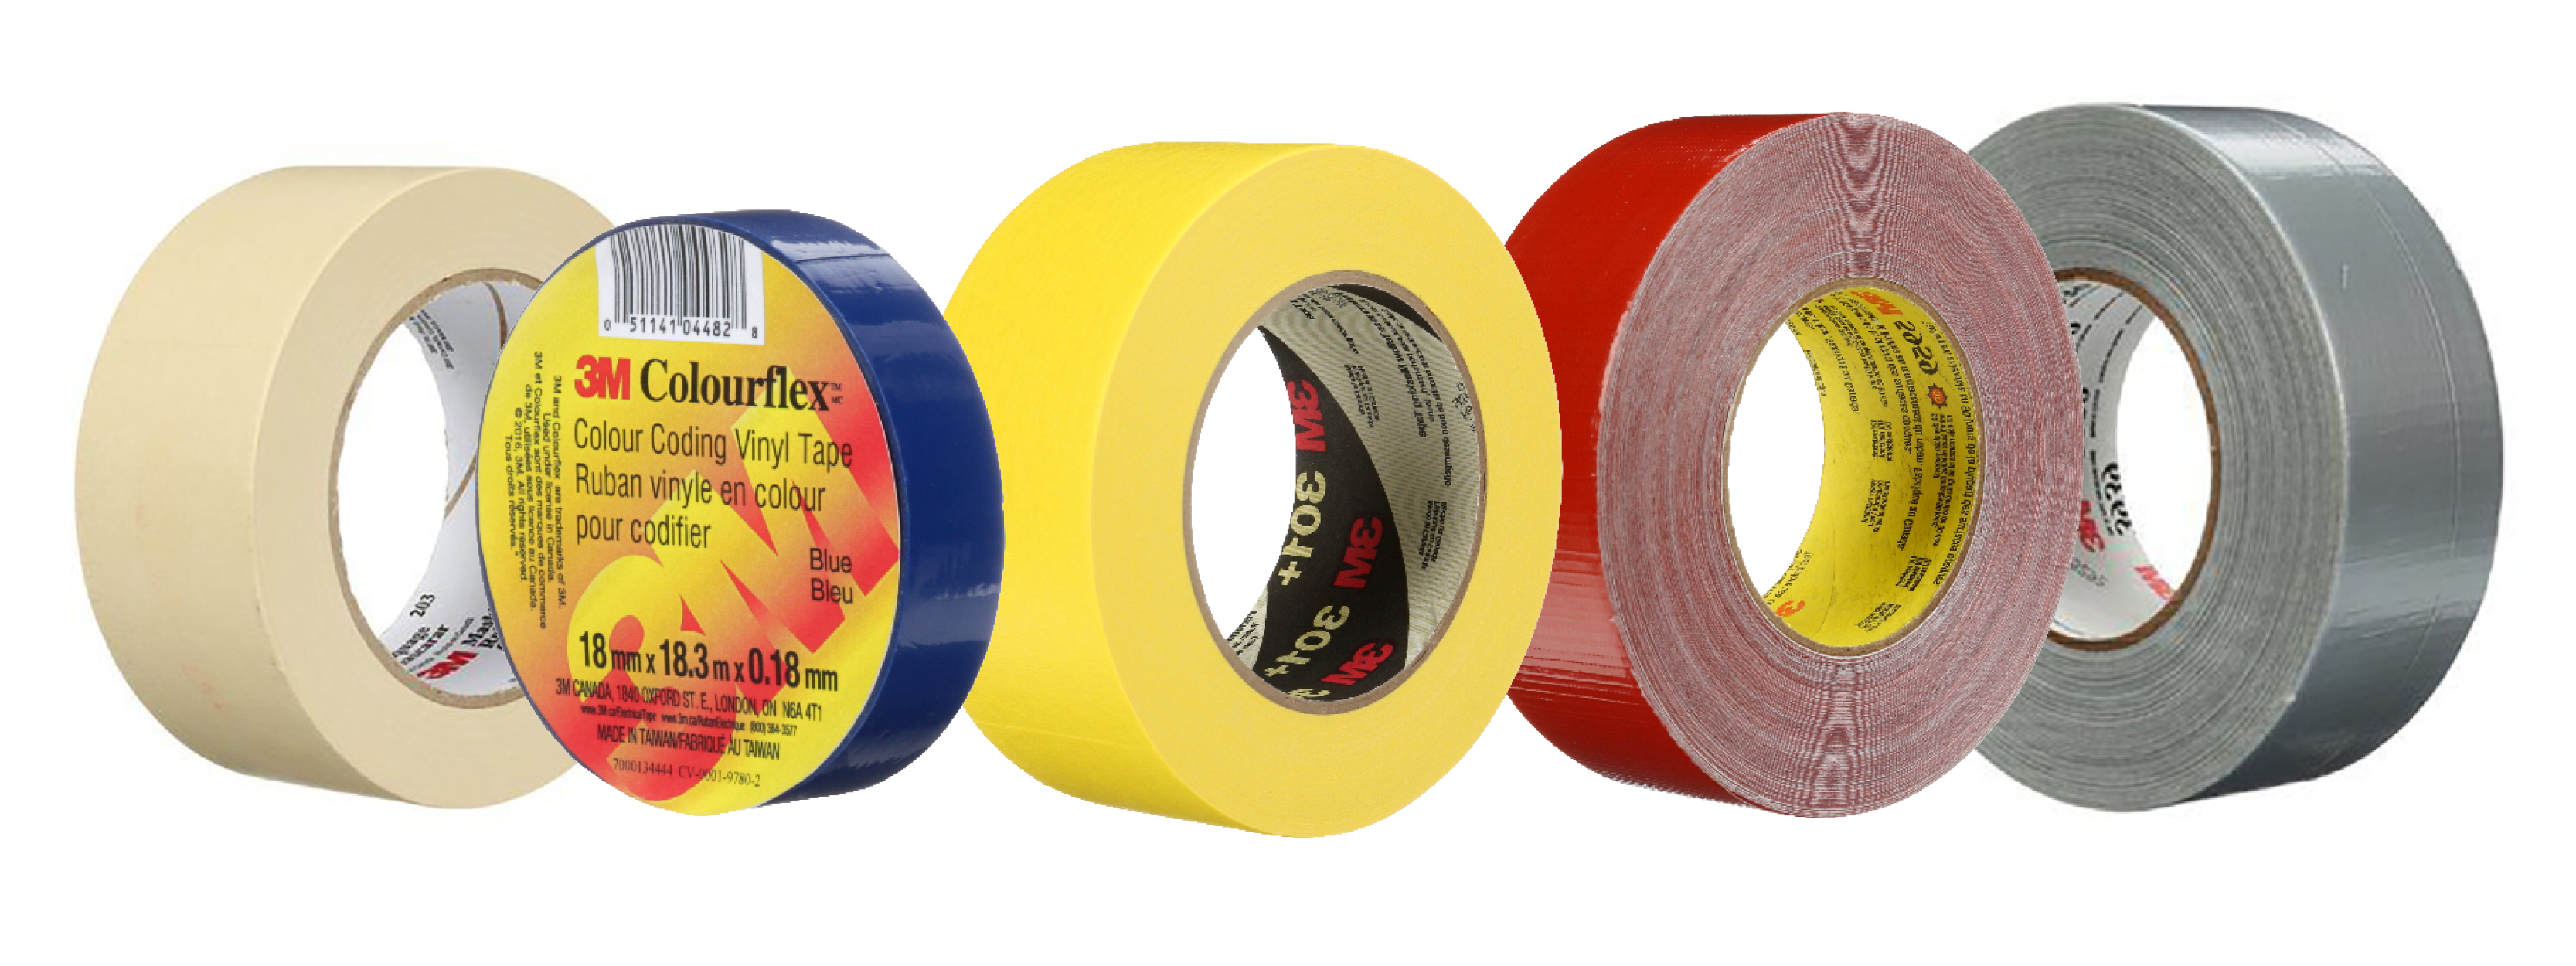 3m products tapes